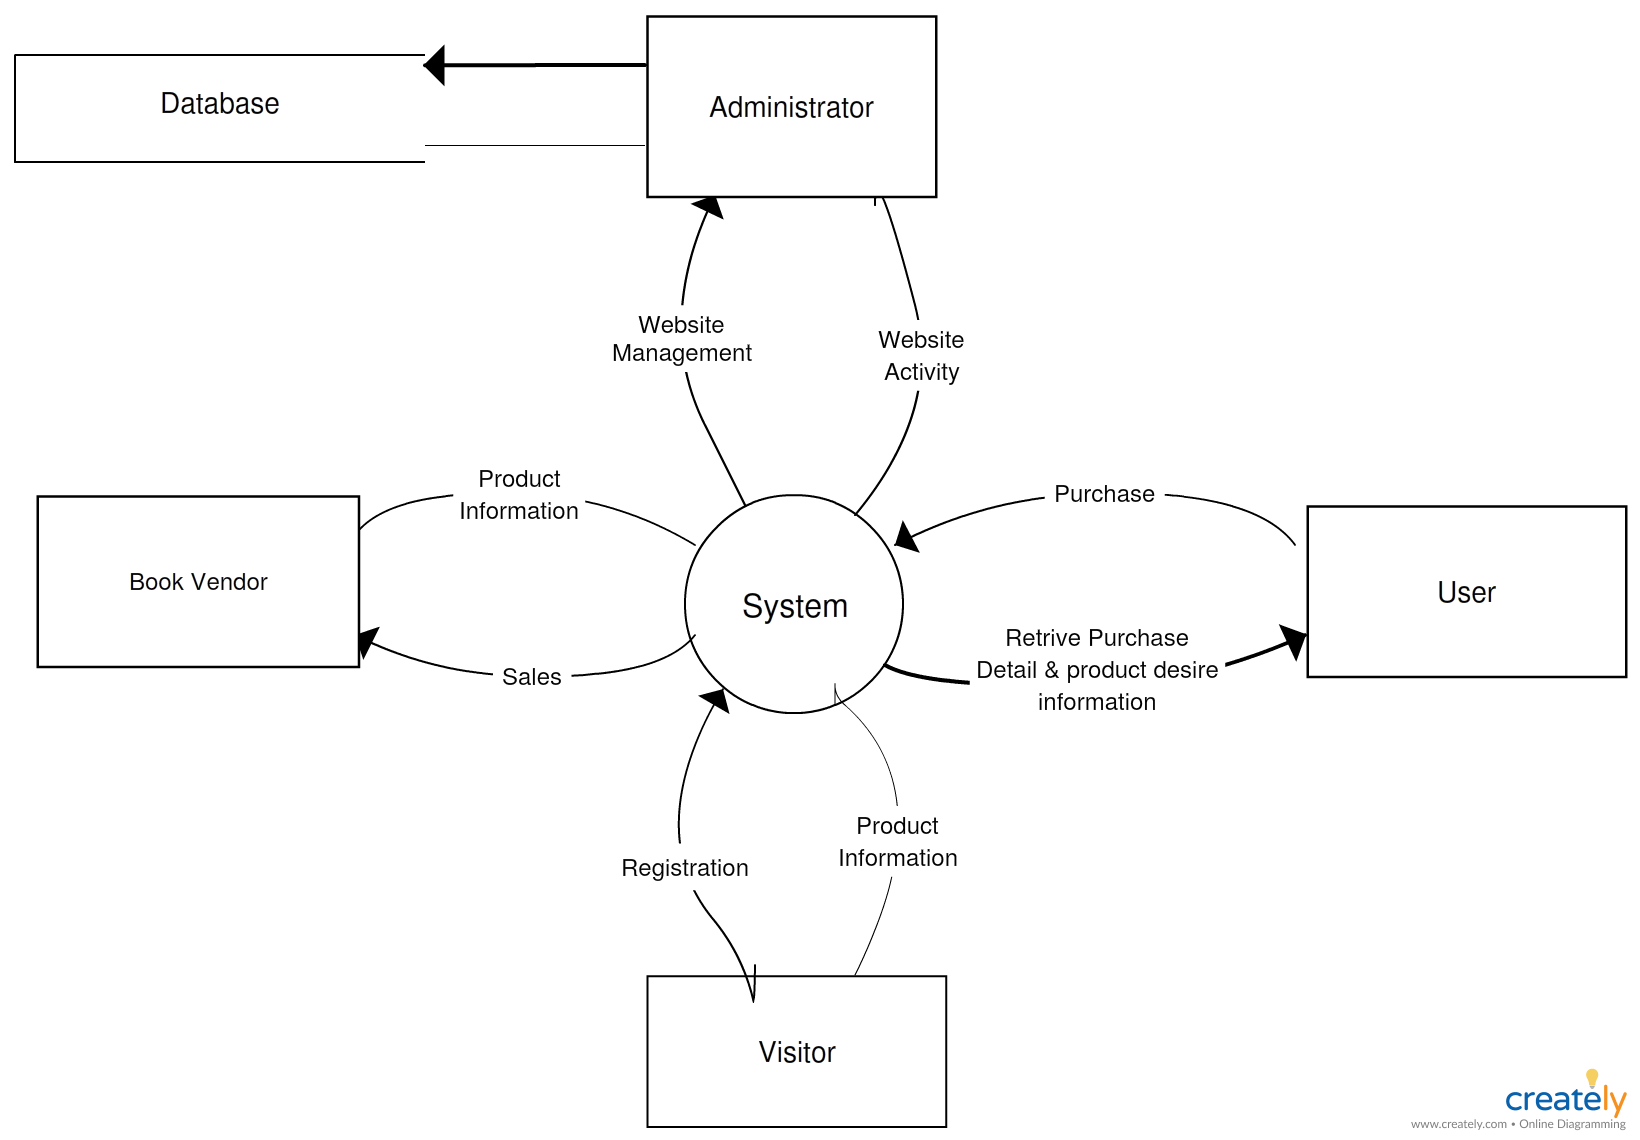 hight resolution of a level 0 data flow diagram dfd shows a data system as a whole and emphasizes the way it interacts with external entities this dfd level 0 example shows